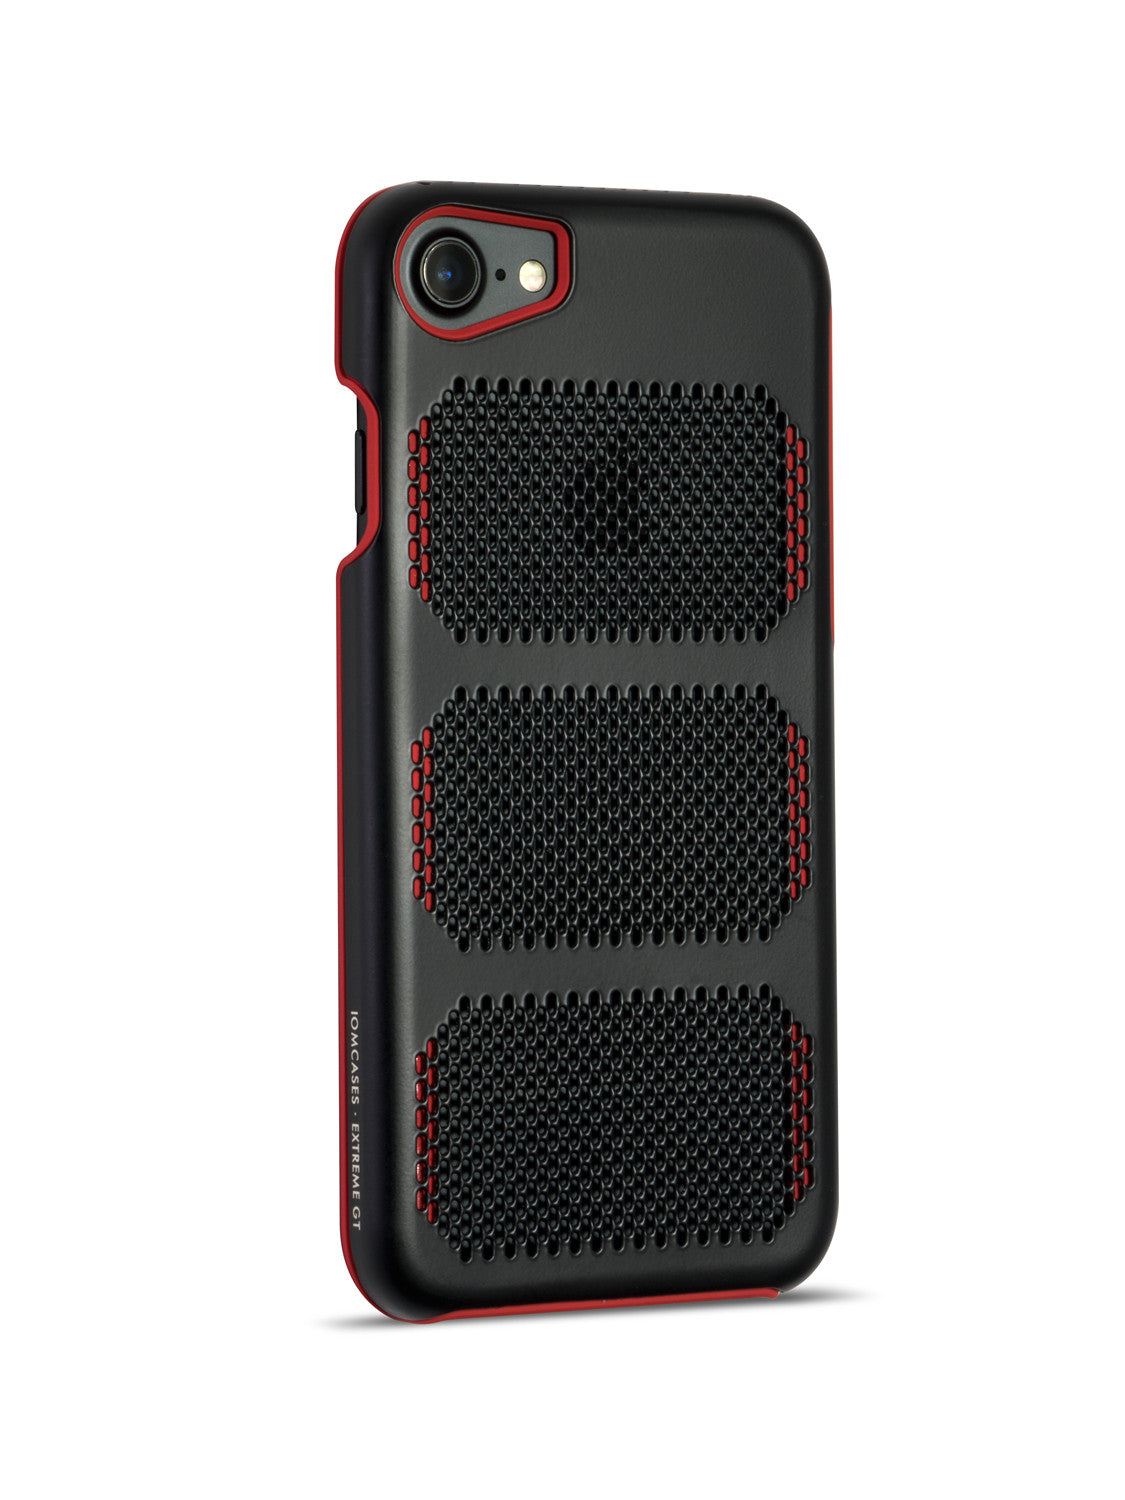 classic fit cacbd efed8 Extreme GT for iPhone 8 Black / Red Trim [compatible with 7,6s,6]